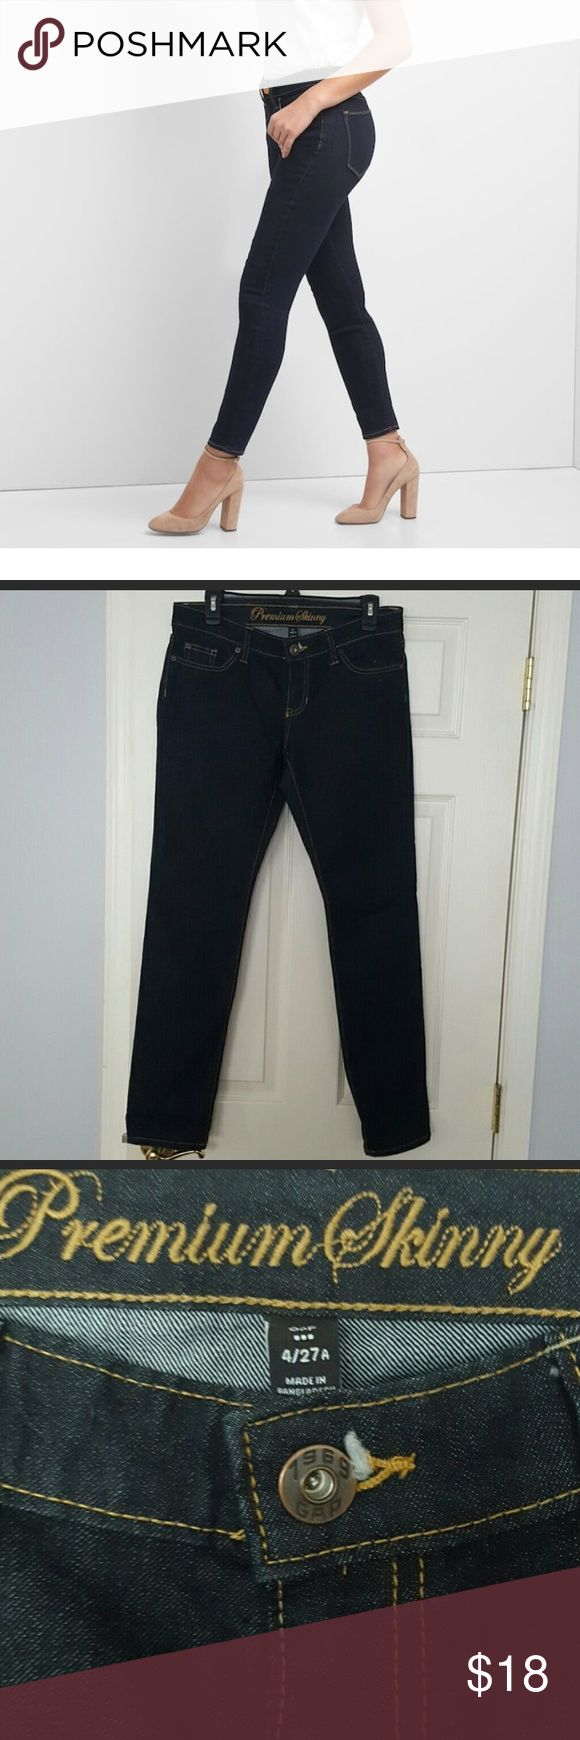 "Gap premium denim skinny ankle length jeans Excellent condition - free from signs of wear. Ankle length. 30"" inseam GAP Jeans Ankle & Cropped"